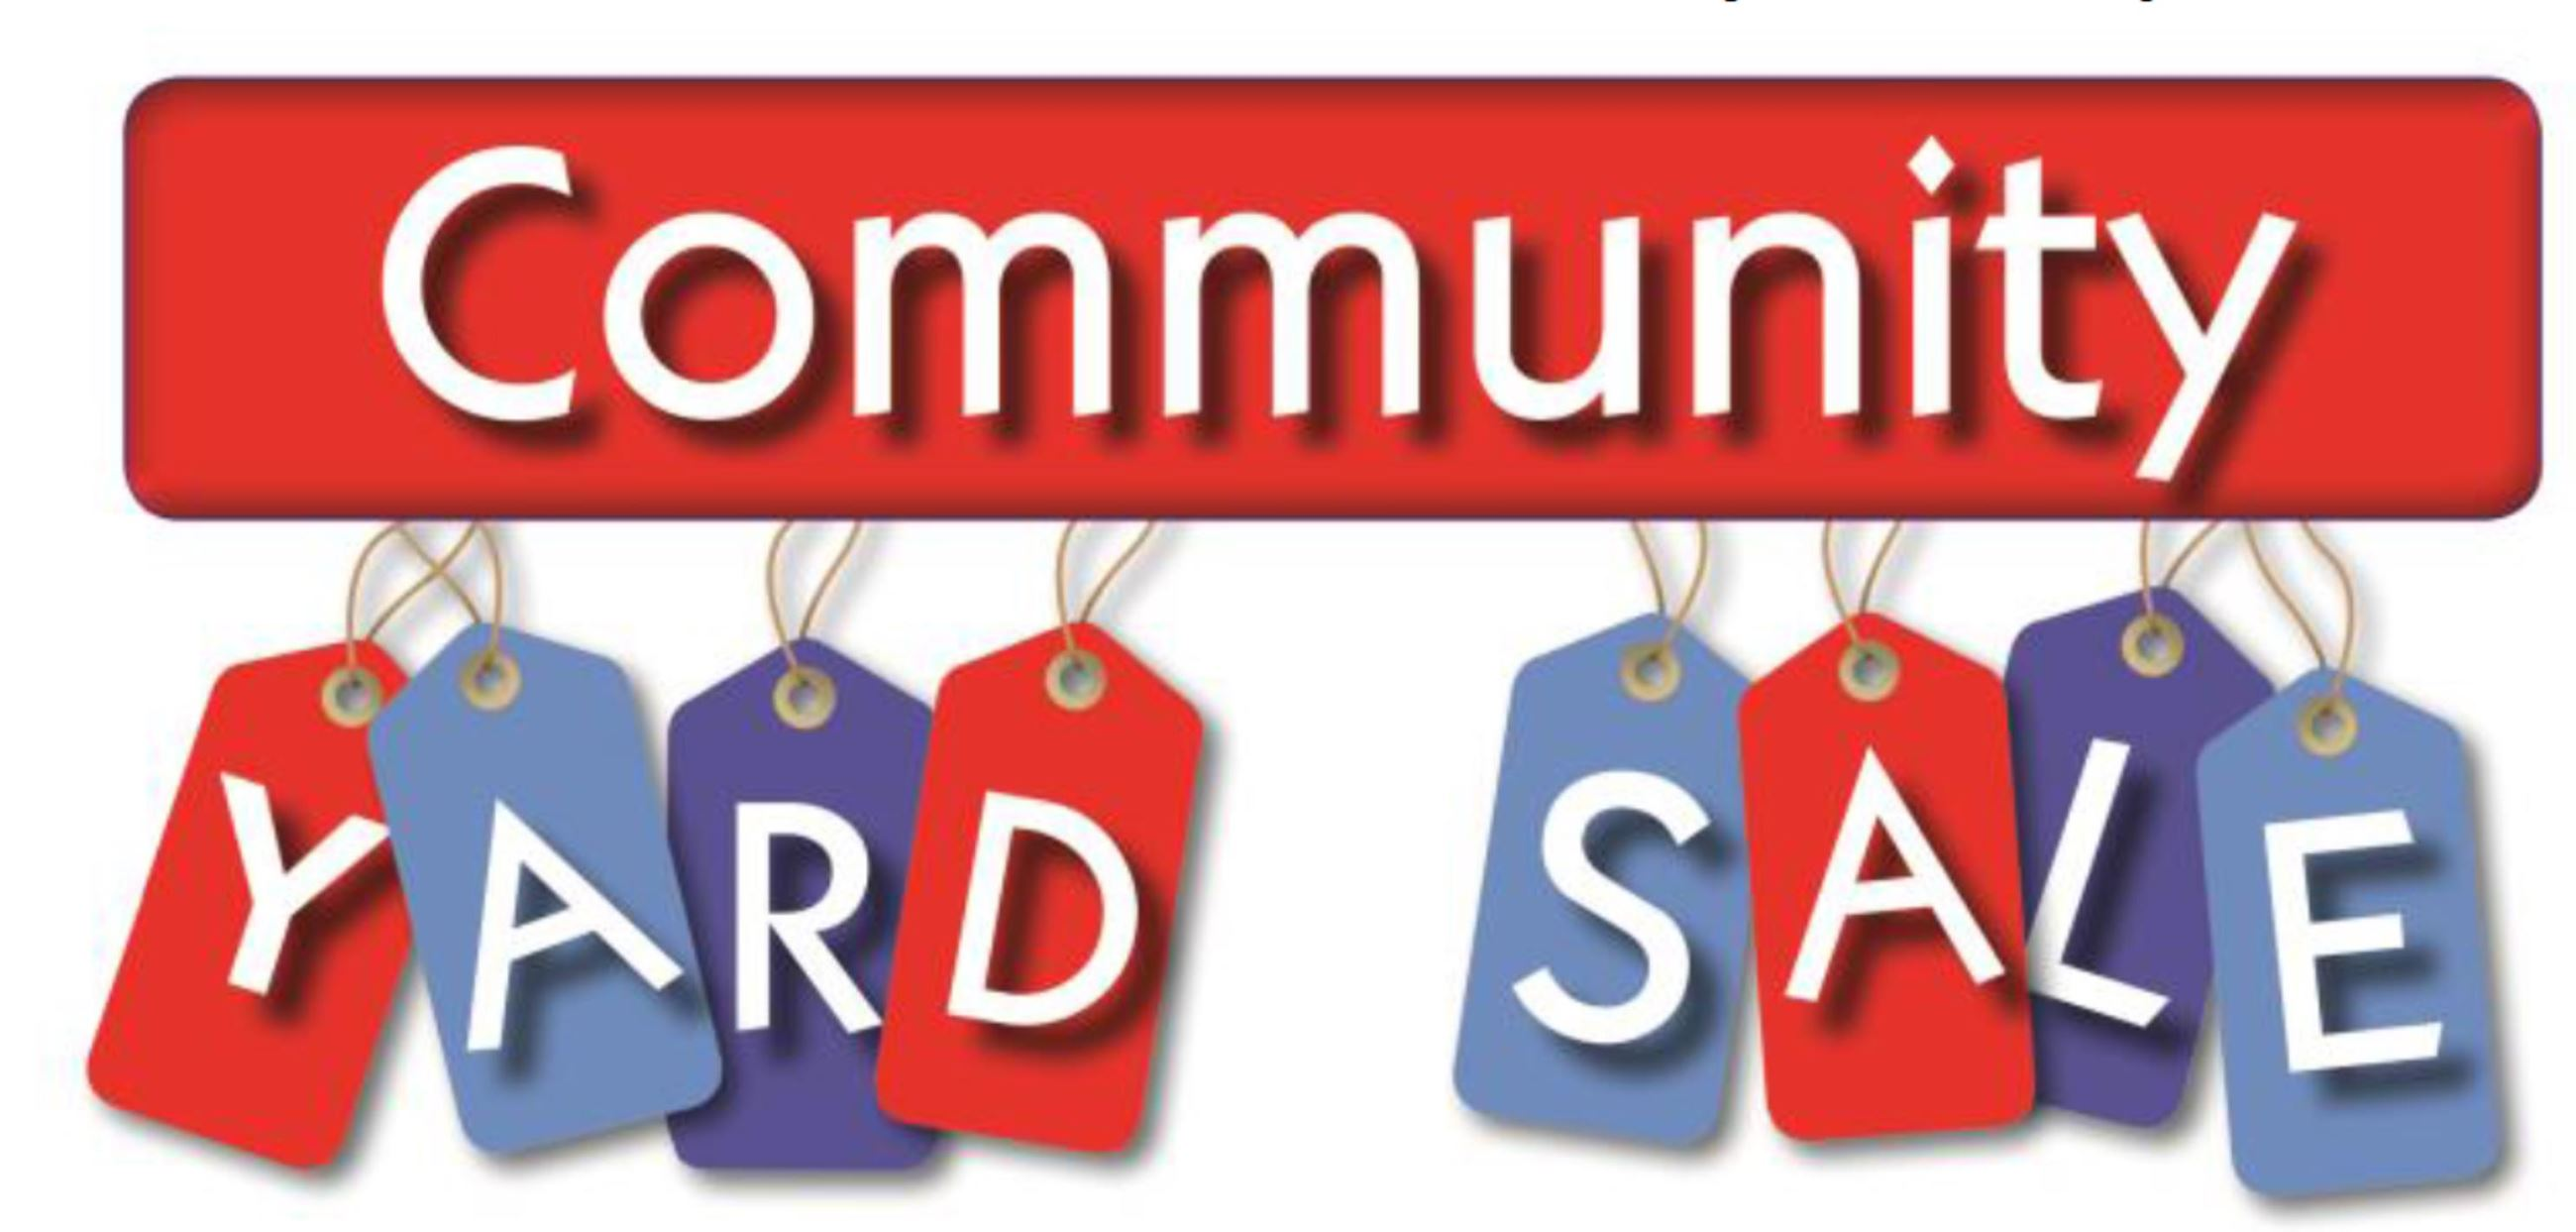 Community Yard Sale Logo